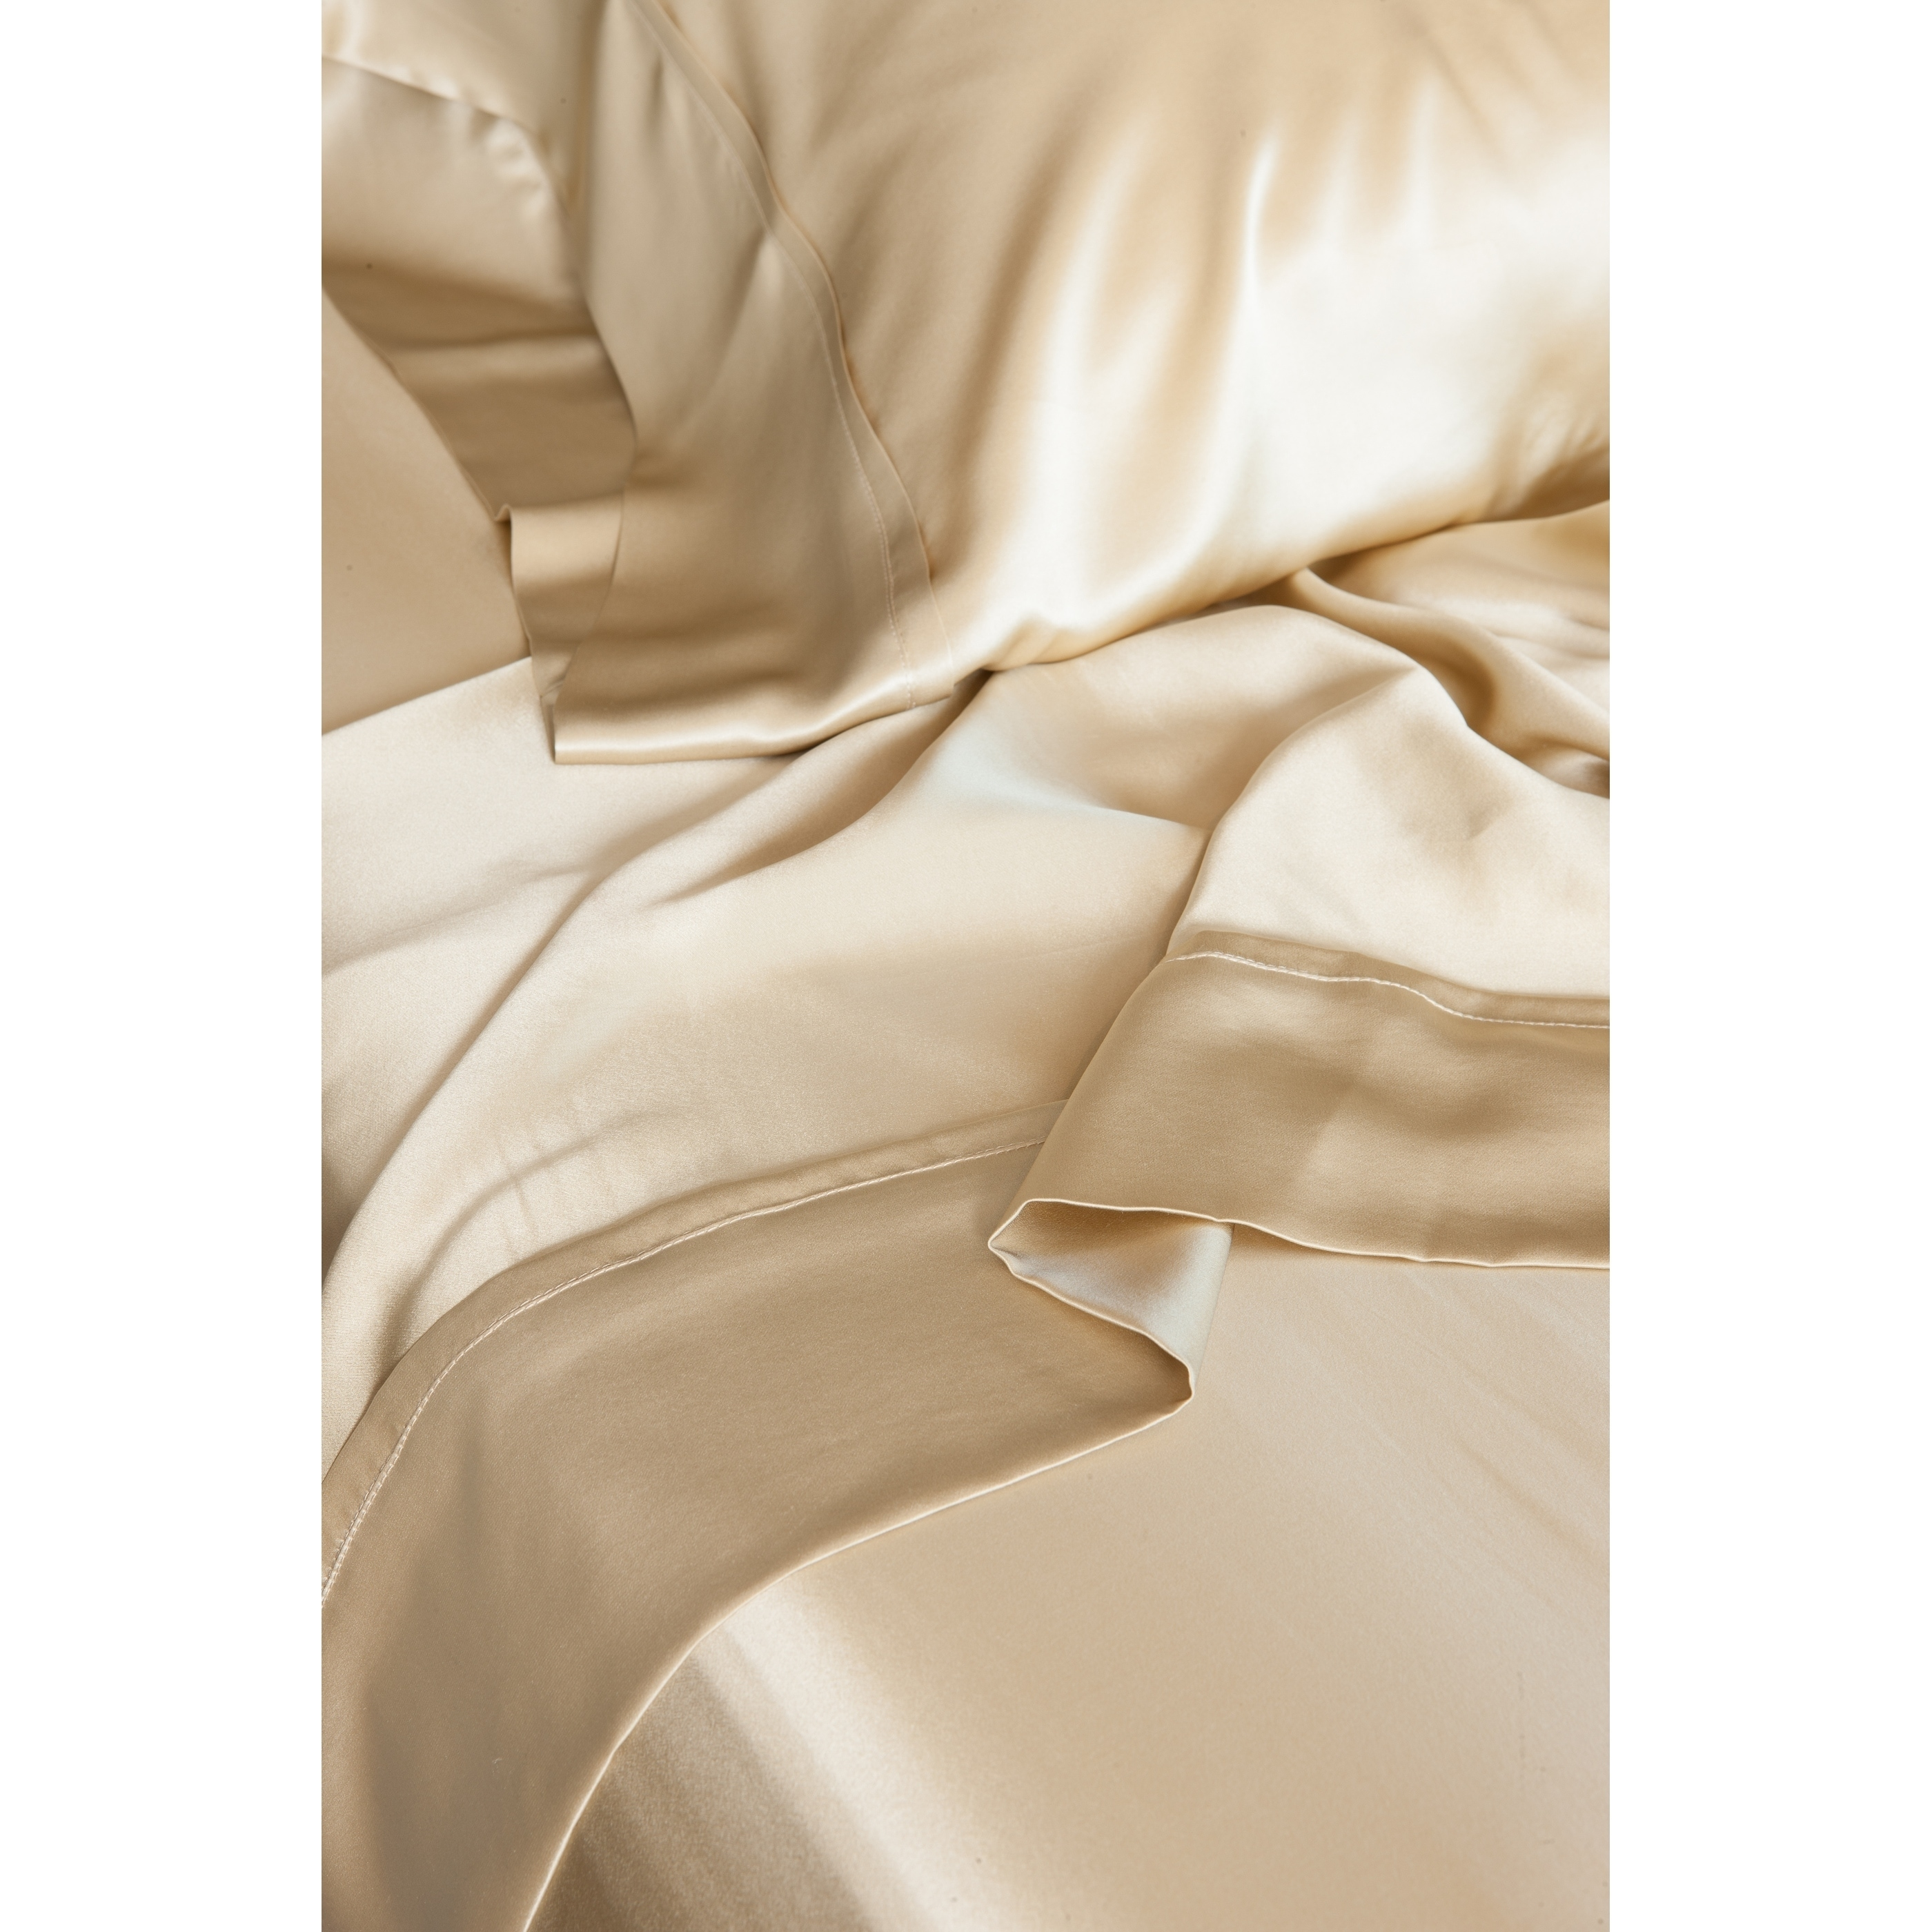 bedroom can mulberry queen percale i disposable comforter cotton california white light grey black cannon sheets blue silk count where flat find thread set sofa buy sheet bed bedding king